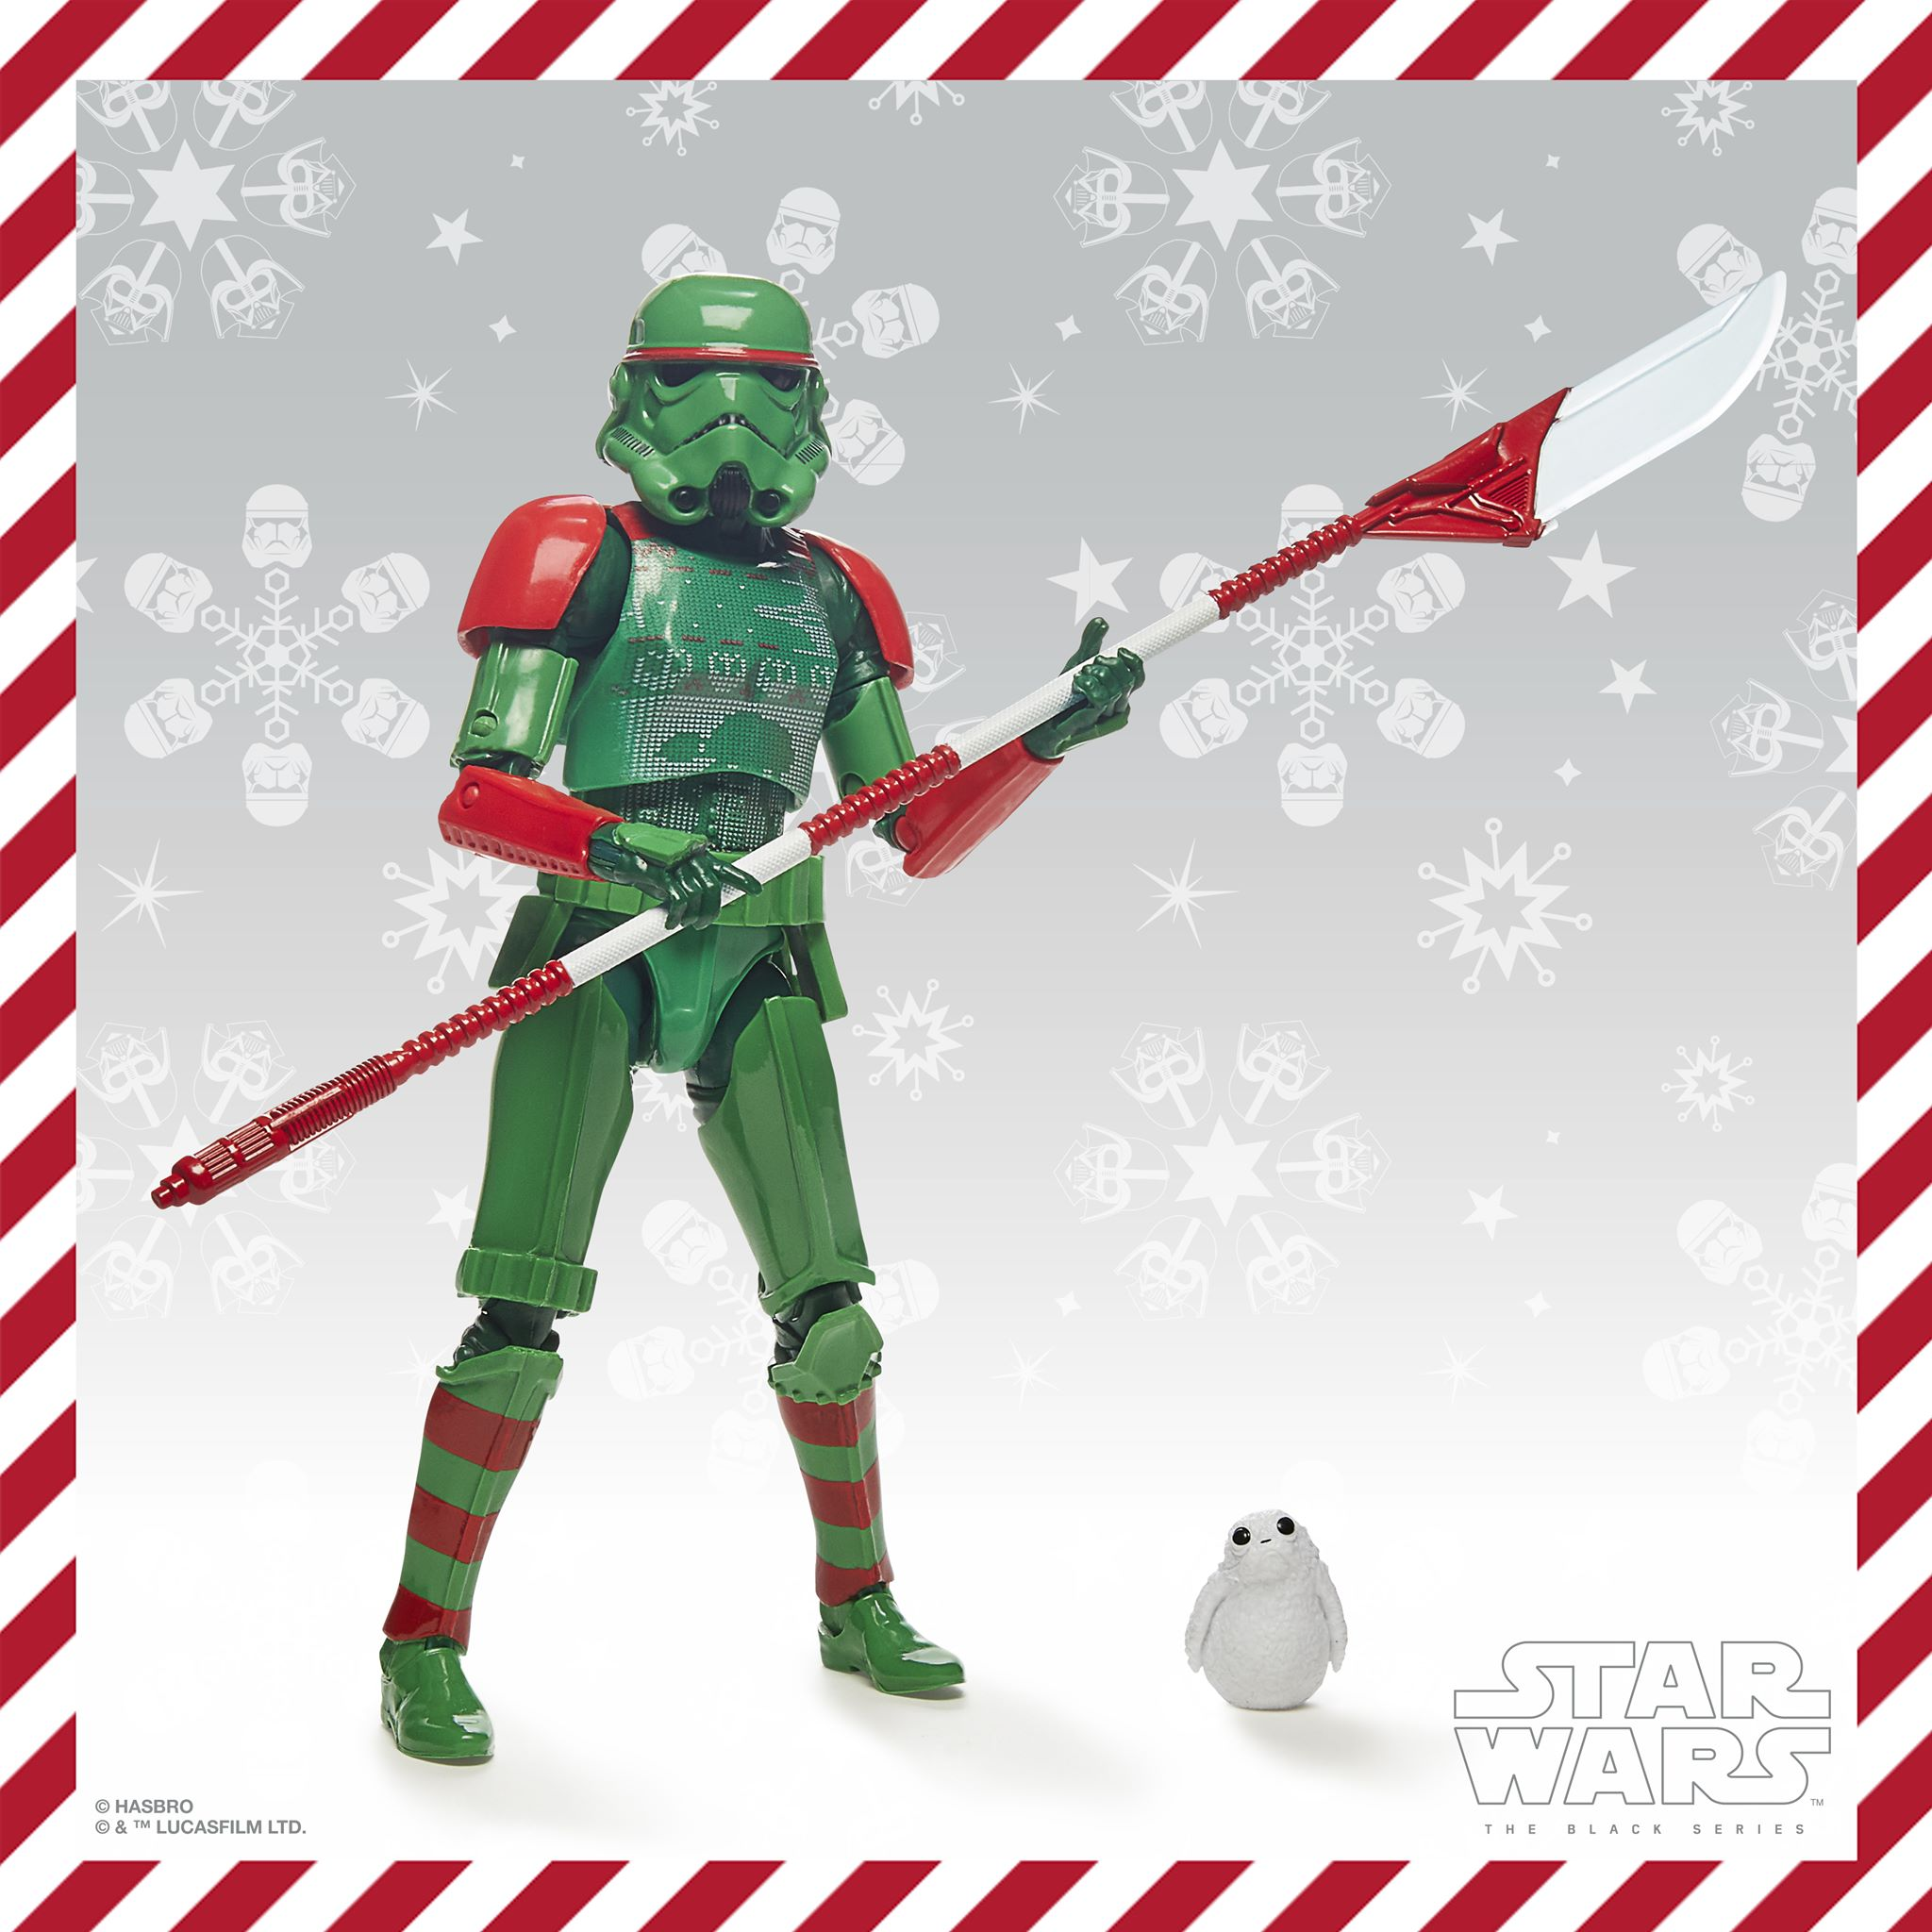 Star Wars Black Series: Stormtrooper Holiday Edition